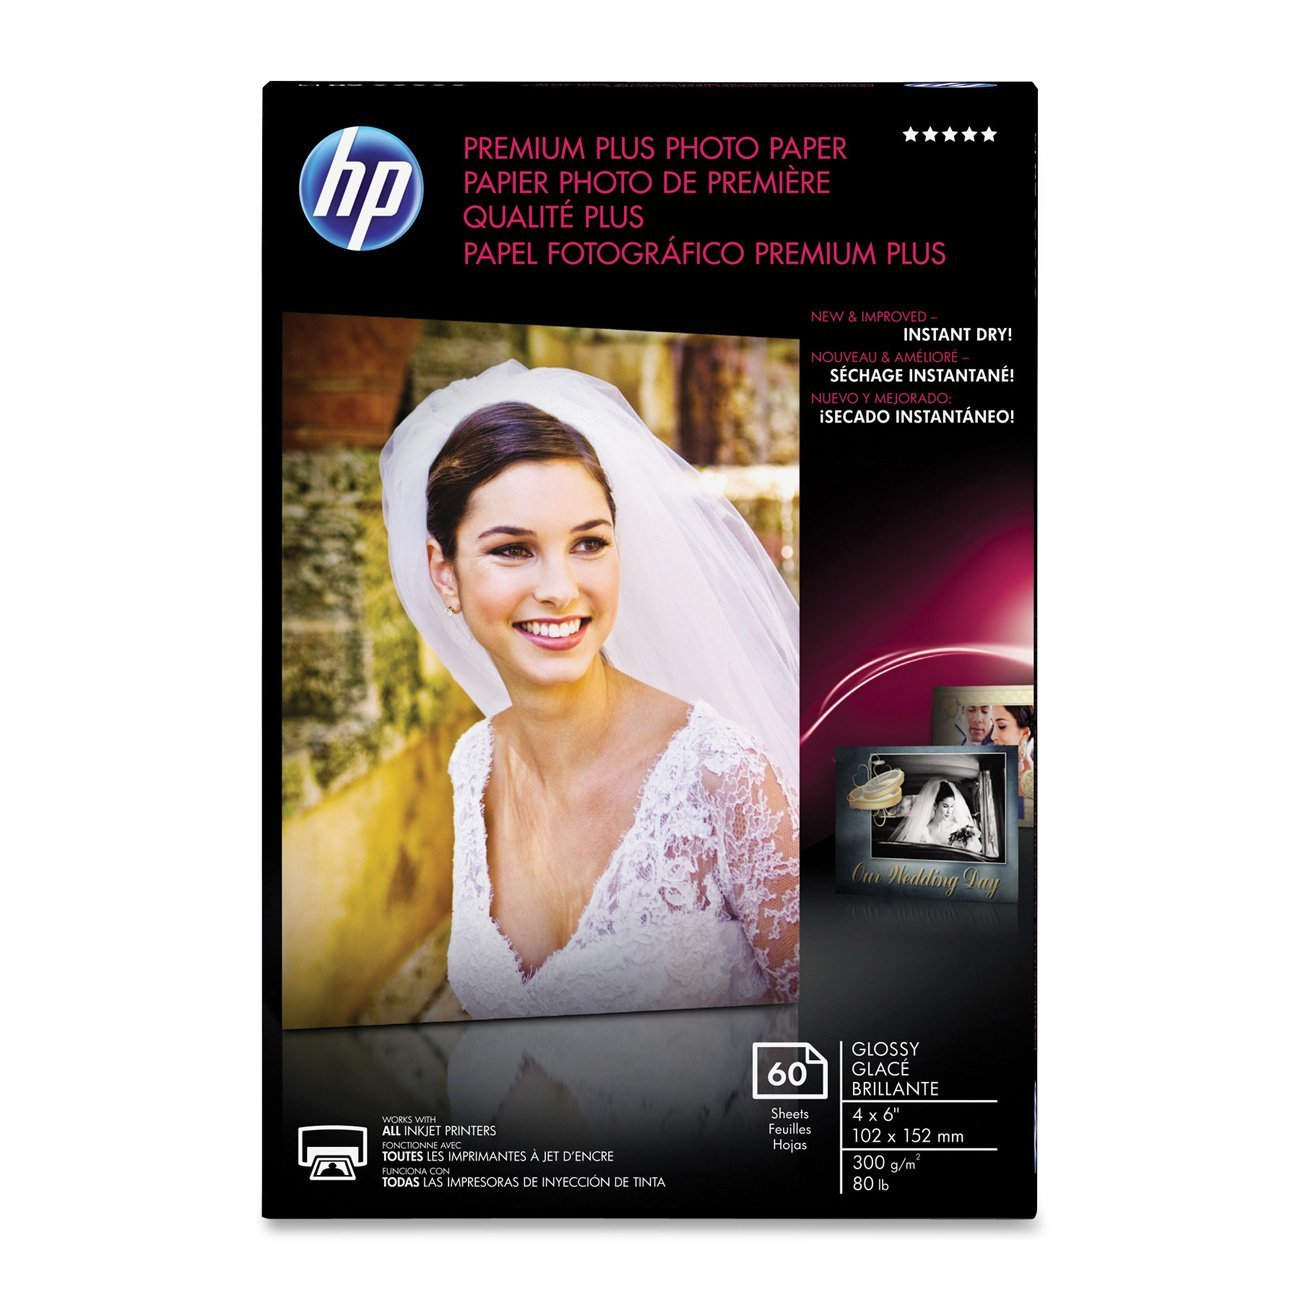 HP Premium Plus Photo Paper, Glossy, 4x6, 60 Sheets (CR665A)